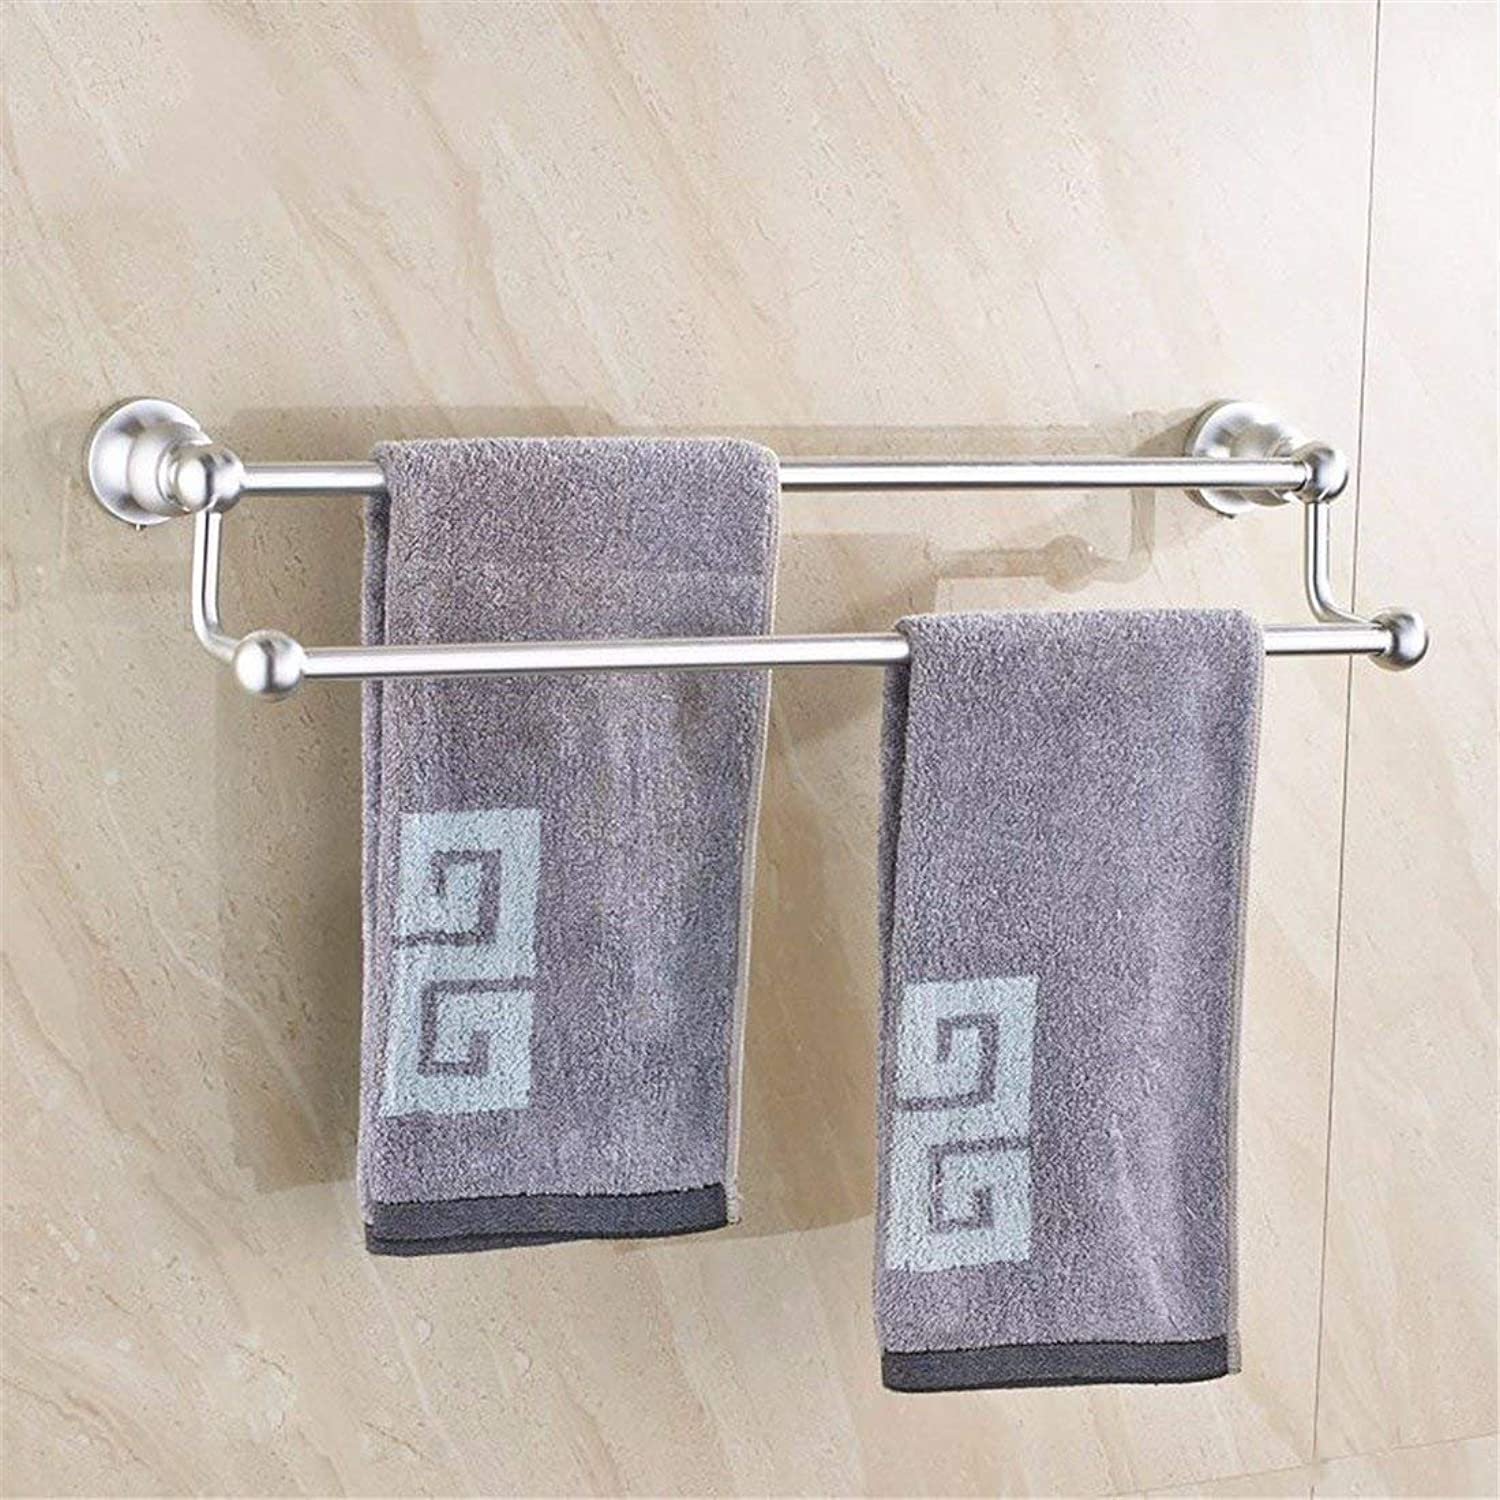 Accessories of Contemporary Bathroom in Silver Aluminum, Toilet Paper, soap Fort,Double Pole Rack